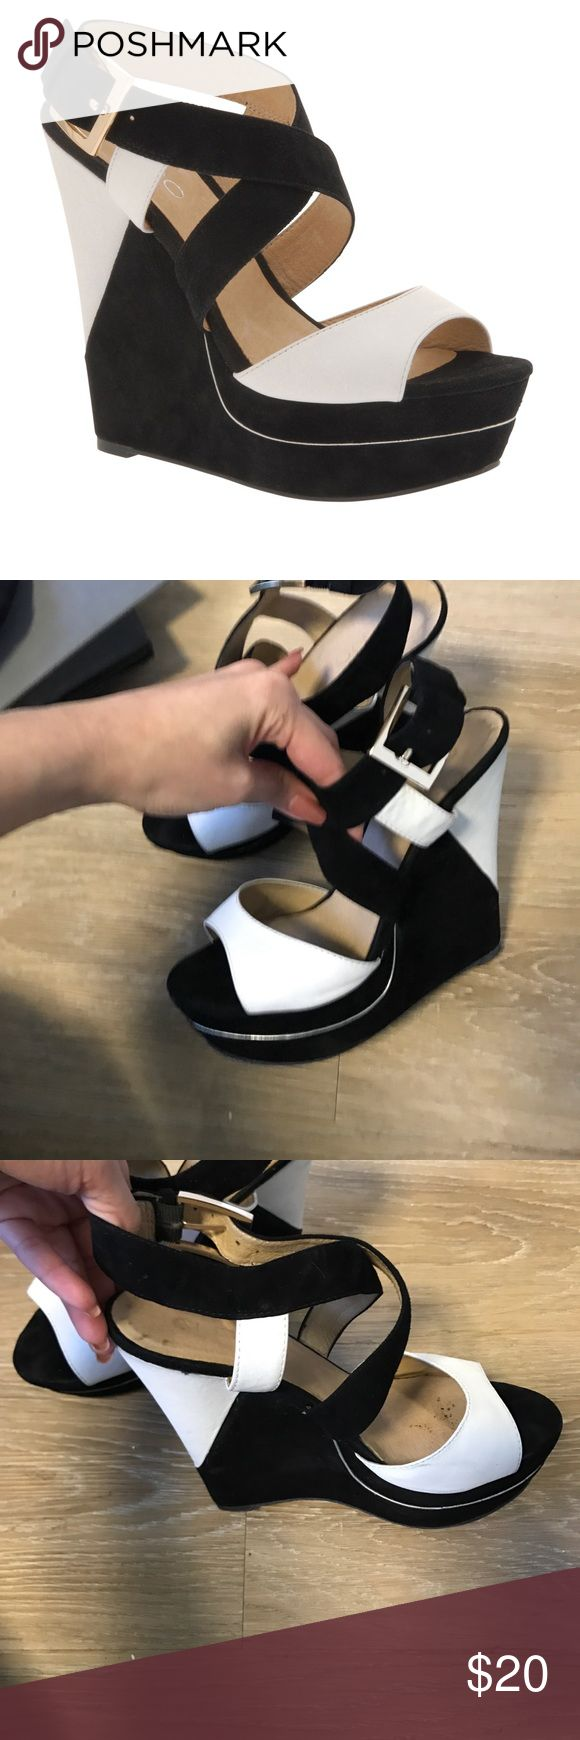 Also black and white wedges Comfy good condition wedges aldo Shoes Wedges